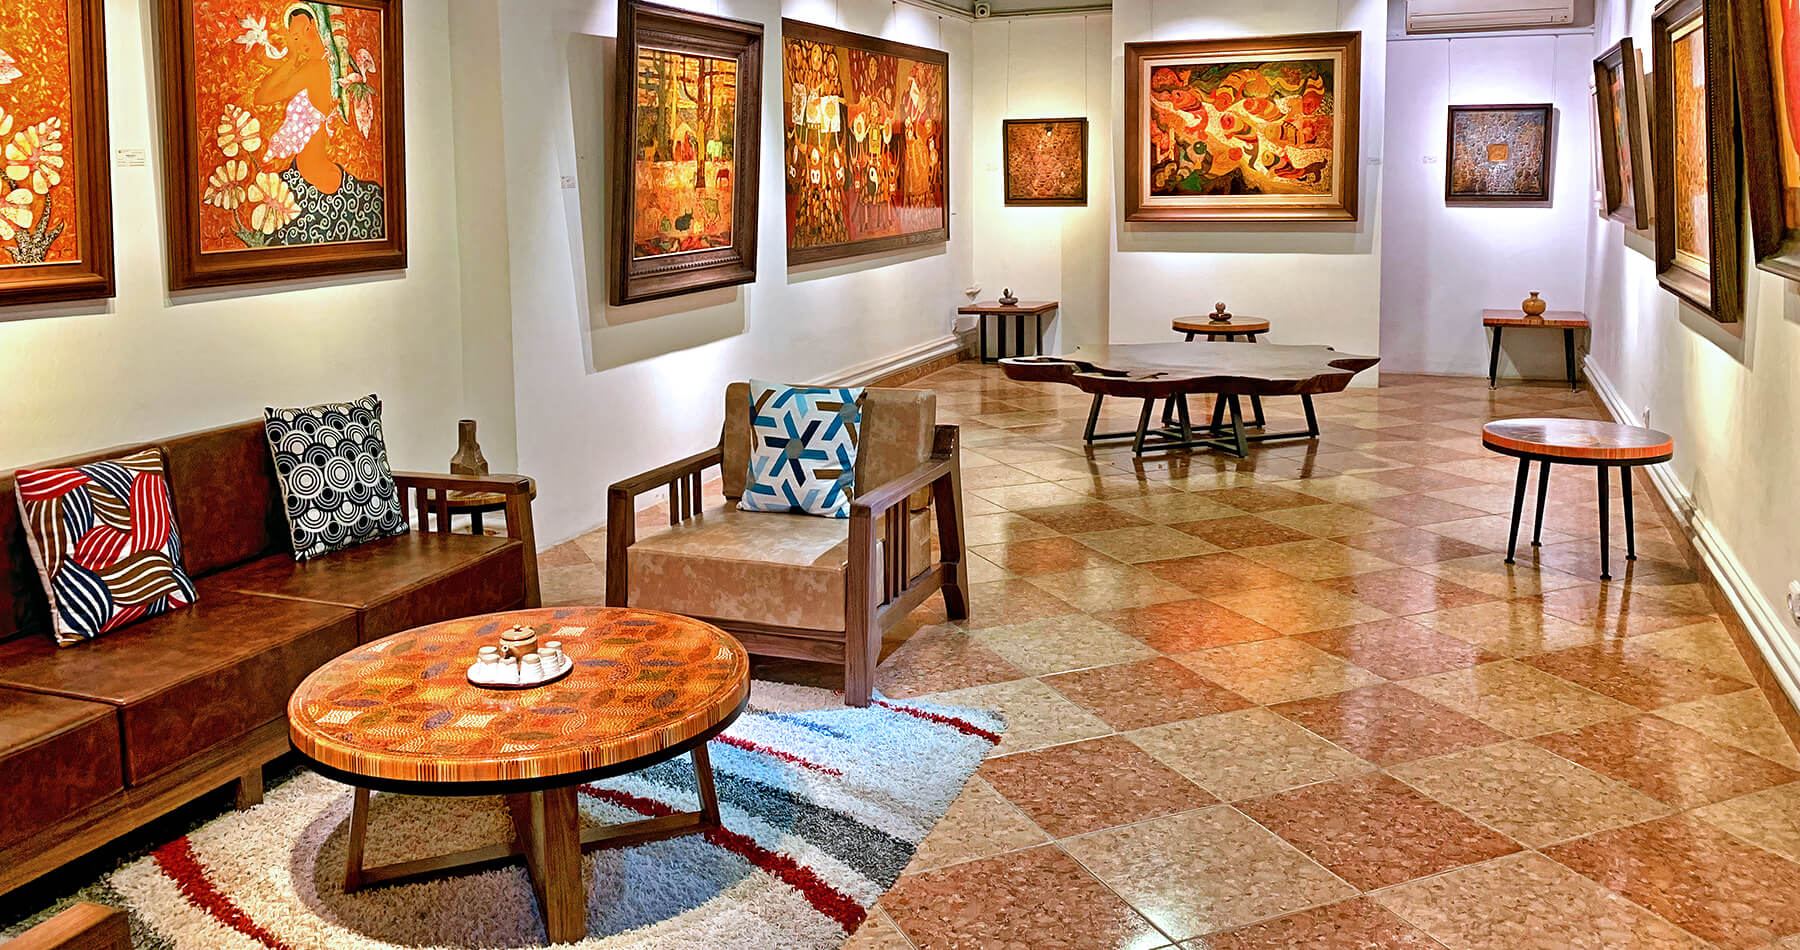 Nguyen Art Gallery Famous Vietnam Artworks and Paintings